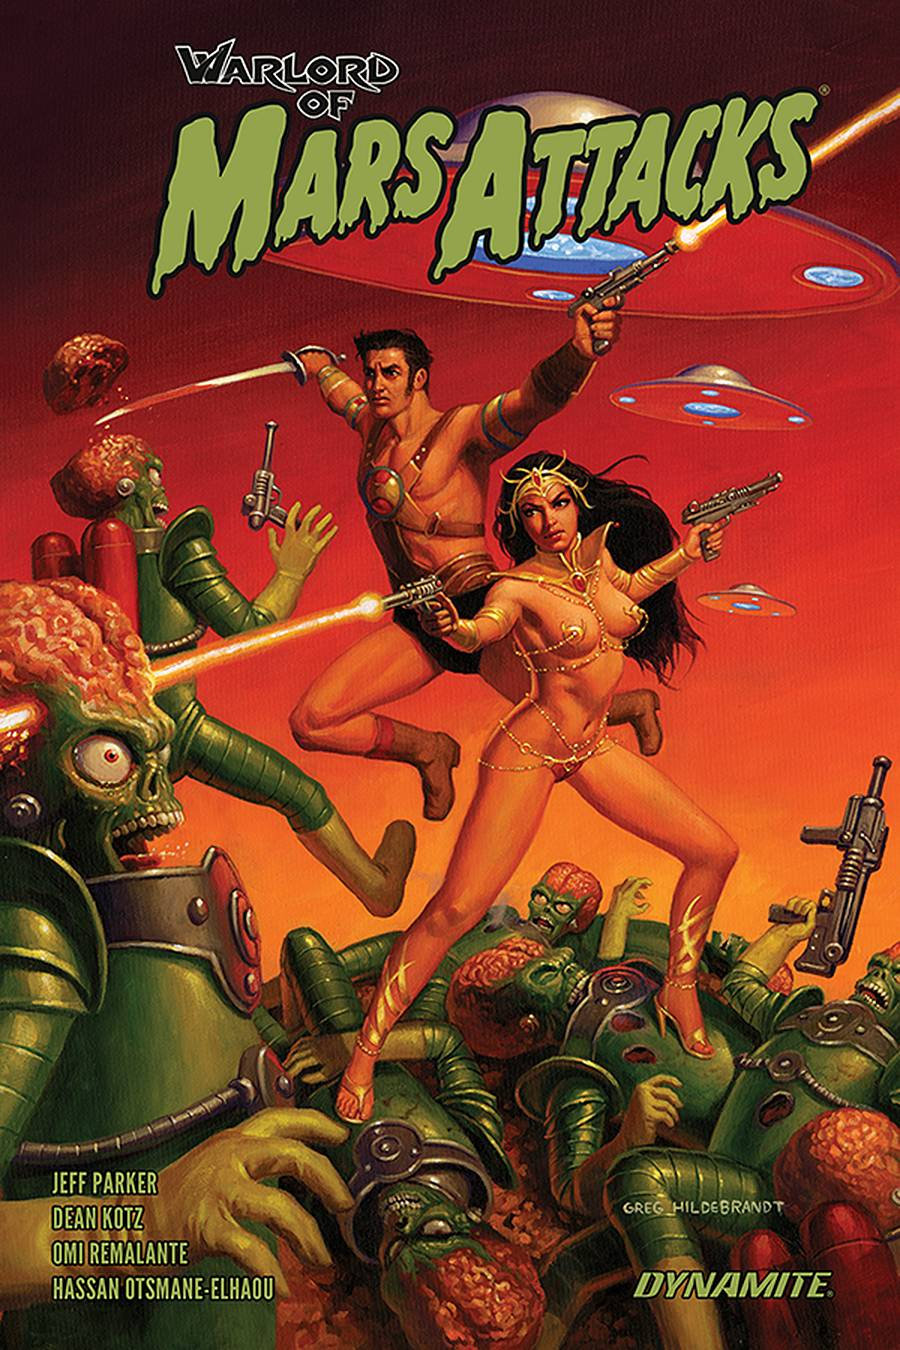 WARLORD OF MARS ATTACKS TP